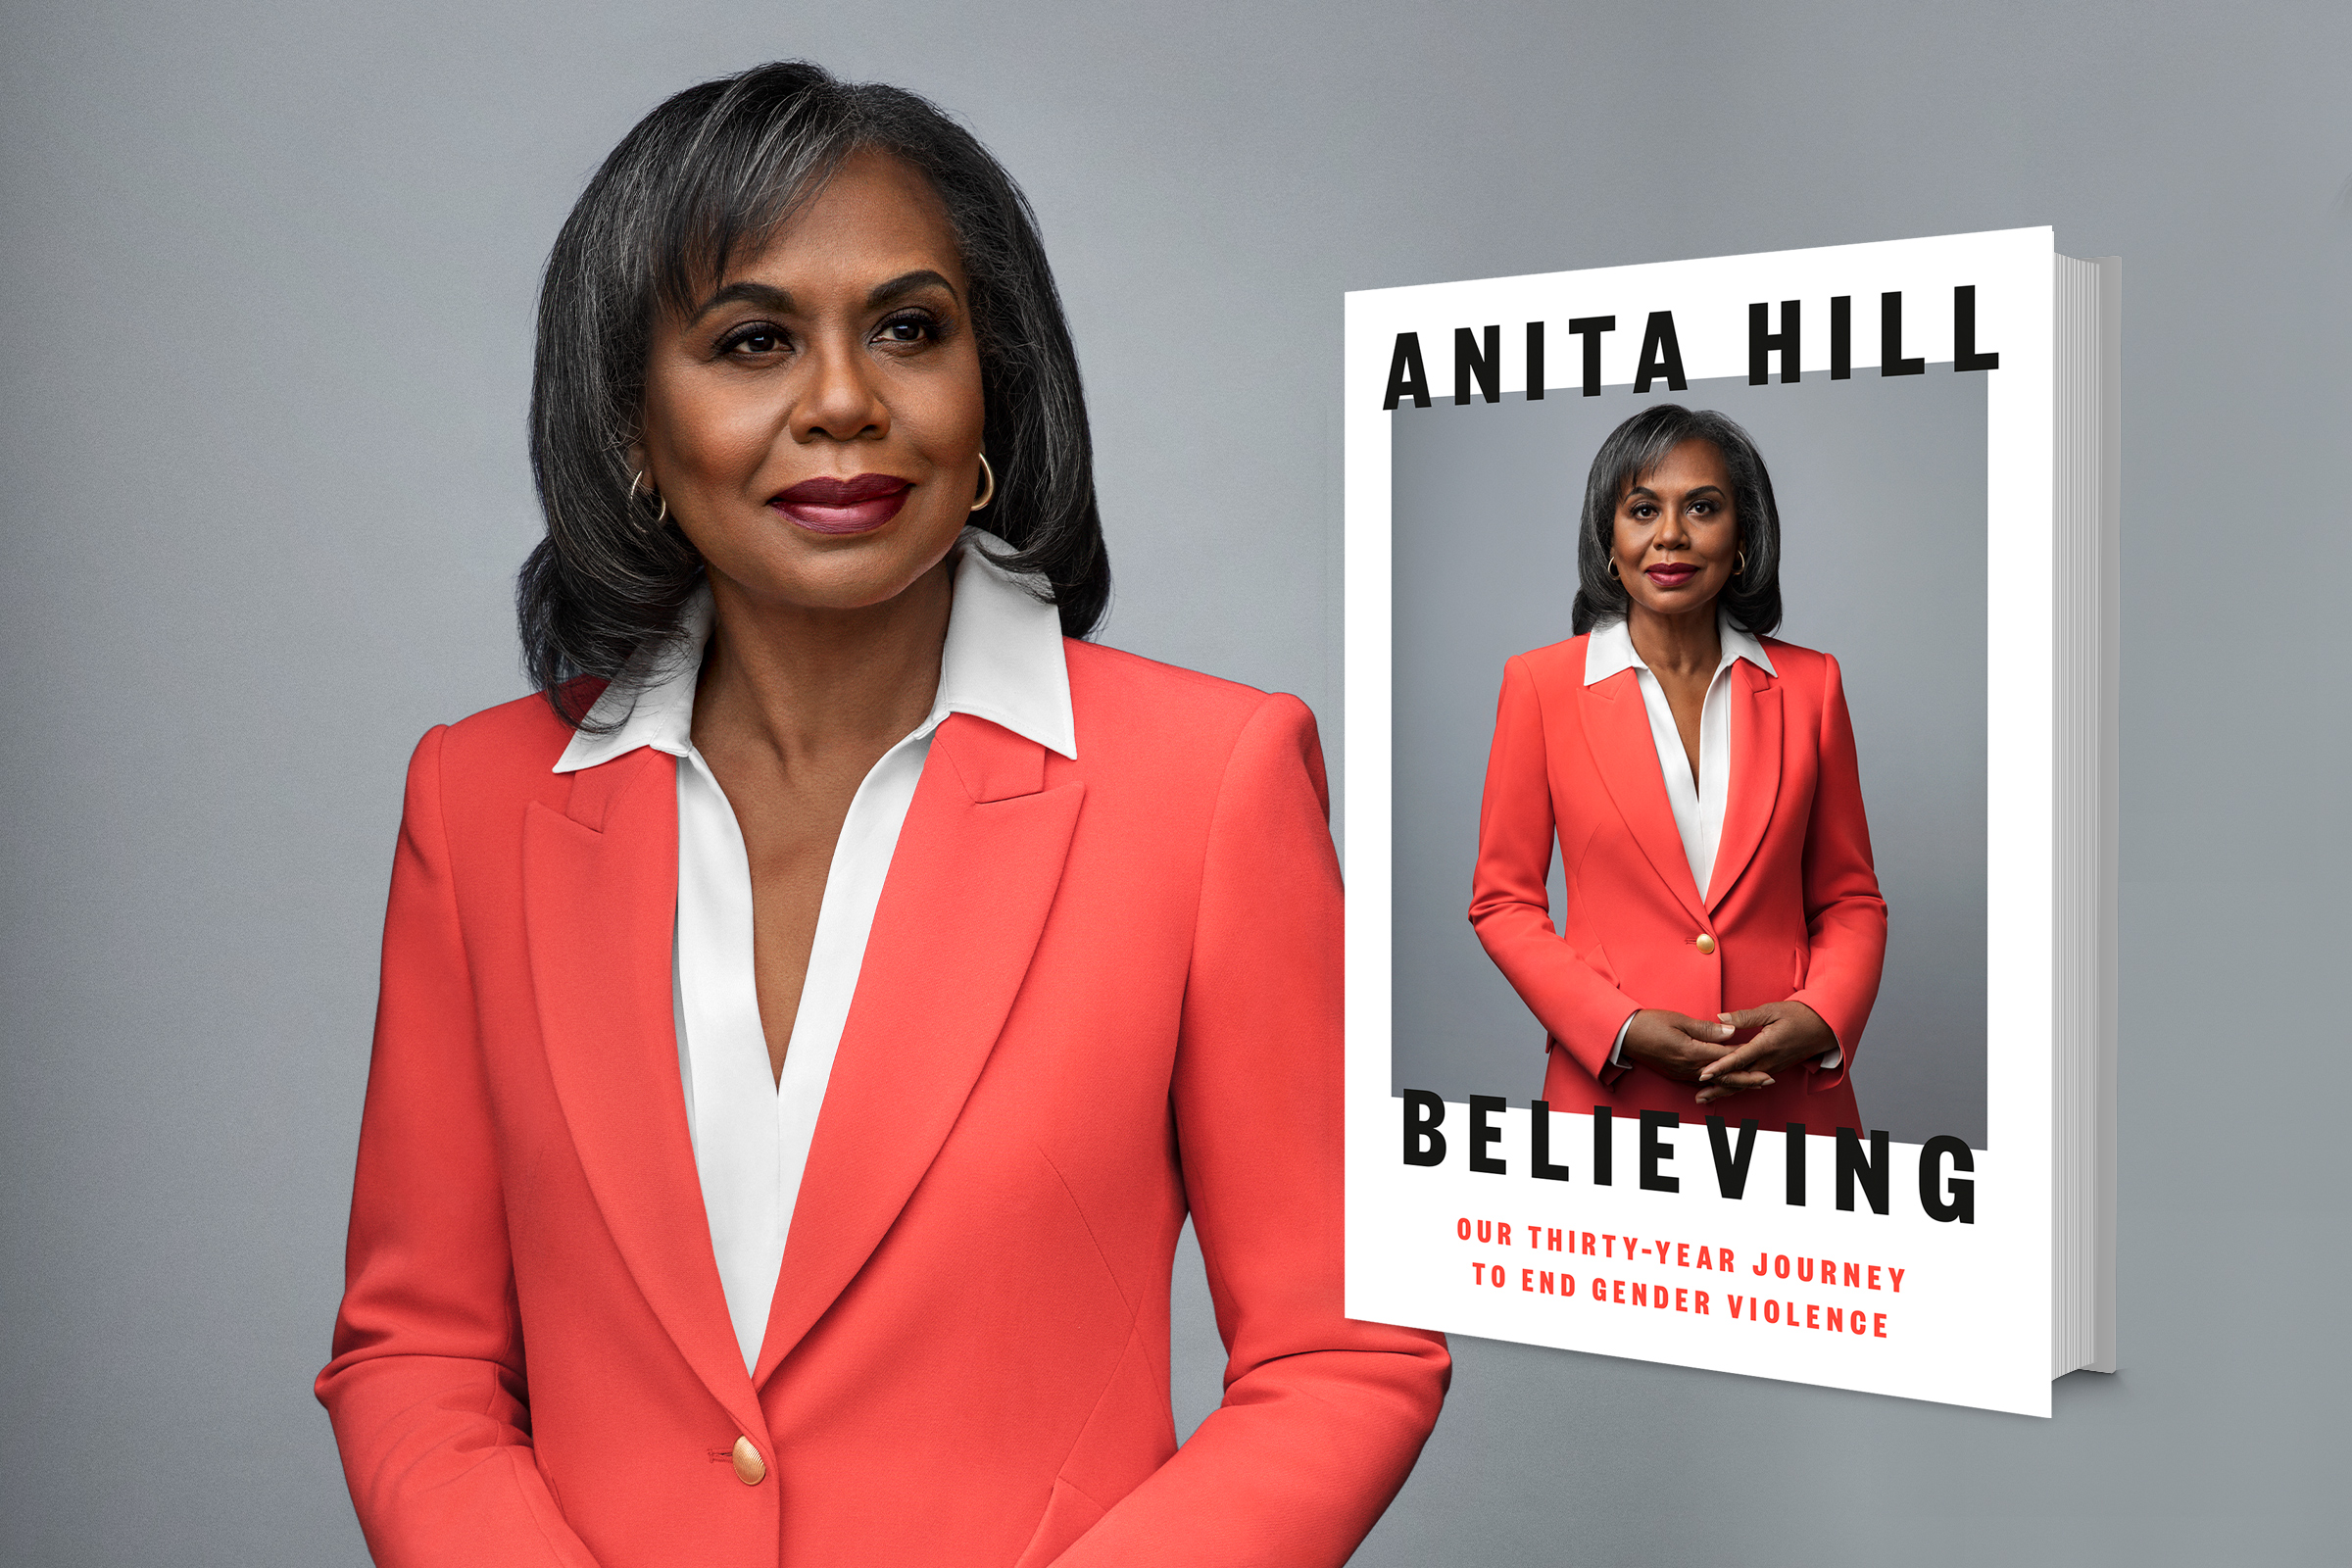 Anita Hill, a Black woman with short, black hair smiles against a gray backdrop